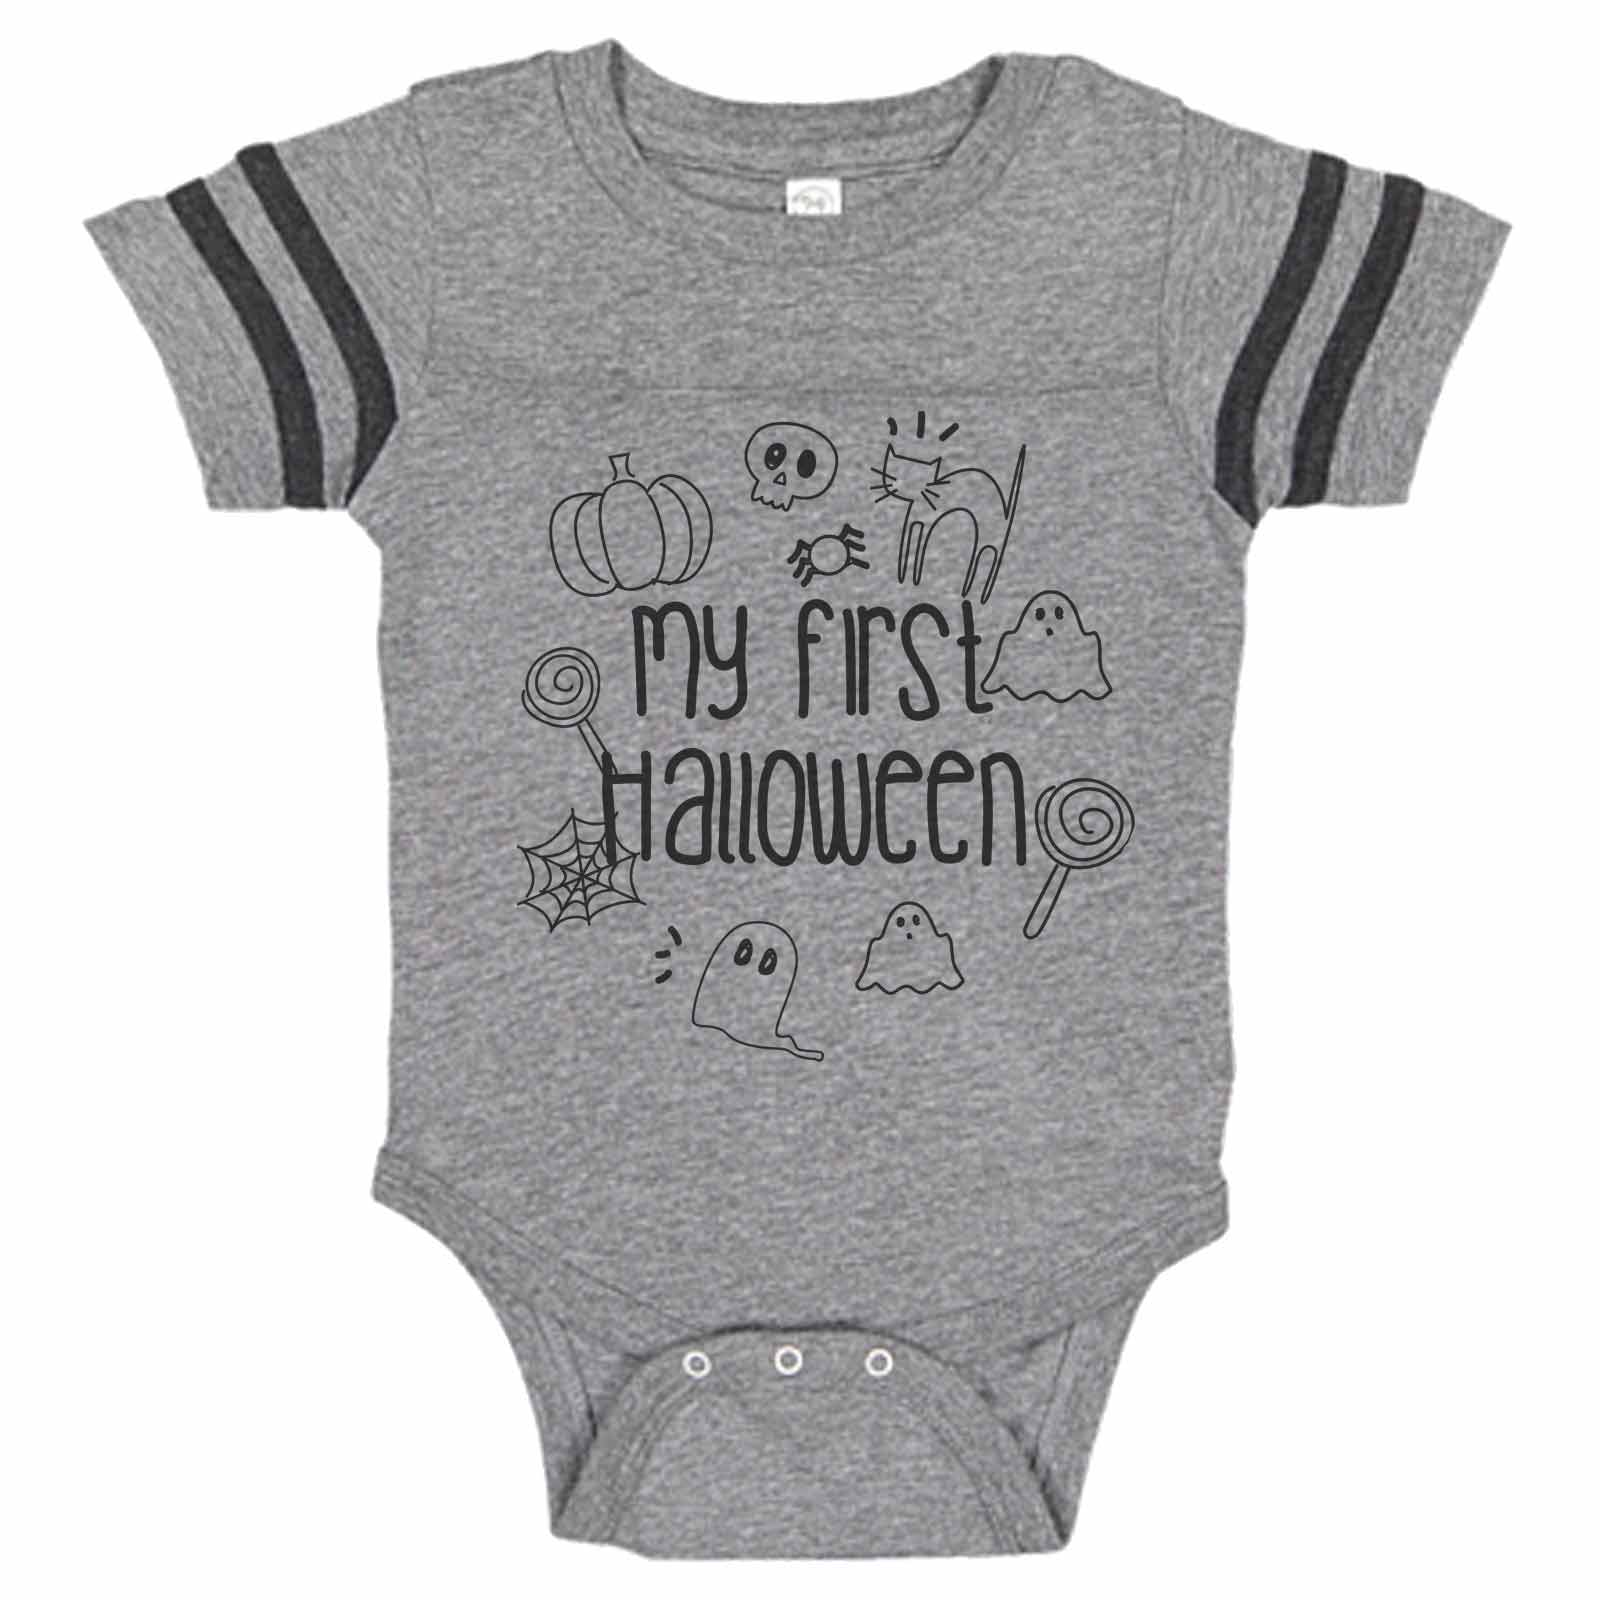 Cutest Pumpkin in the Patch Infant Baseball raglan style bodysuits Perfect for the baby boy or baby girl for Halloween trick or treating!